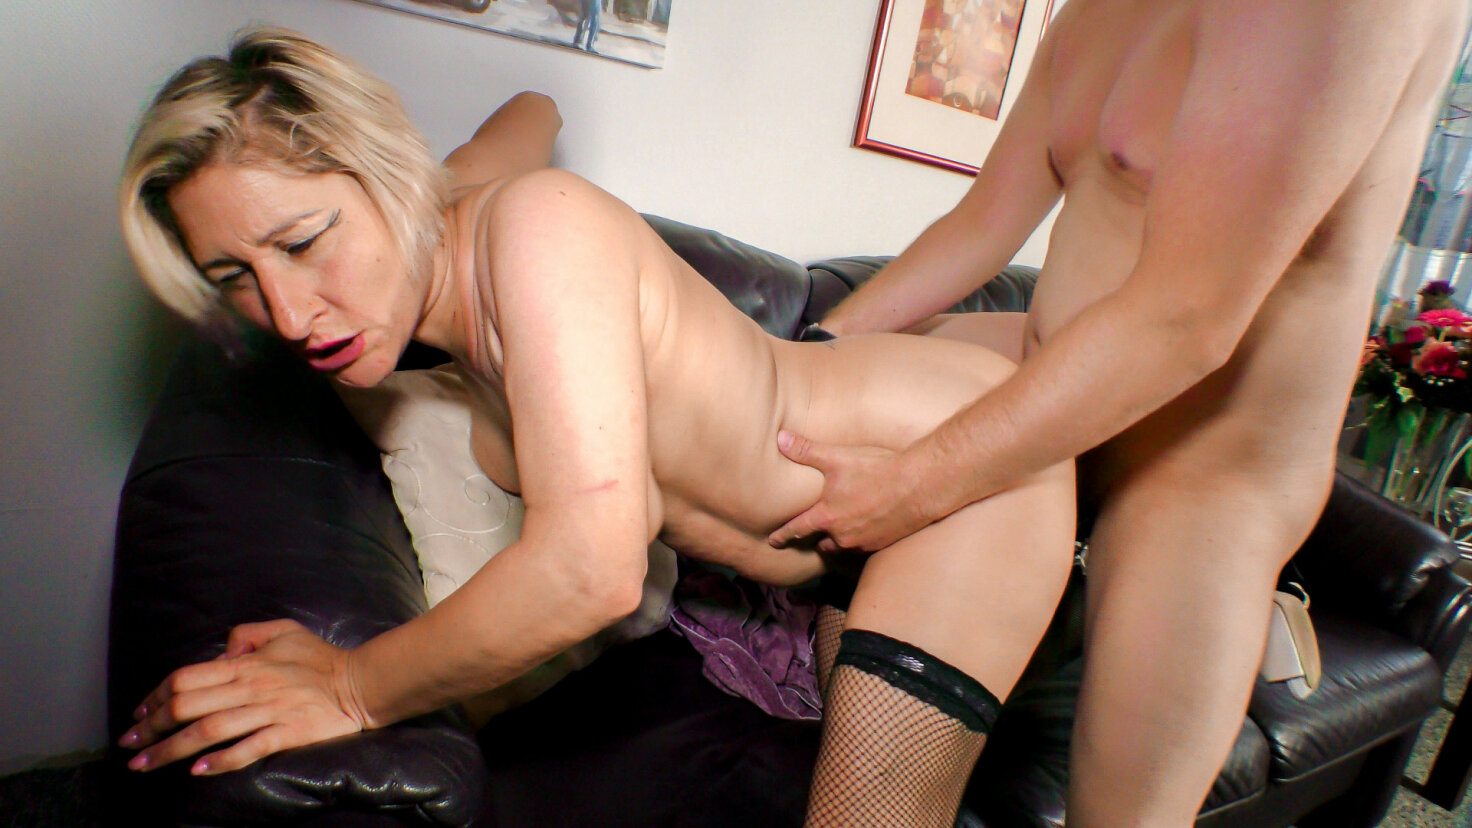 Busty German newbie Teresa R. gets her mature twat fucked in sex reportage